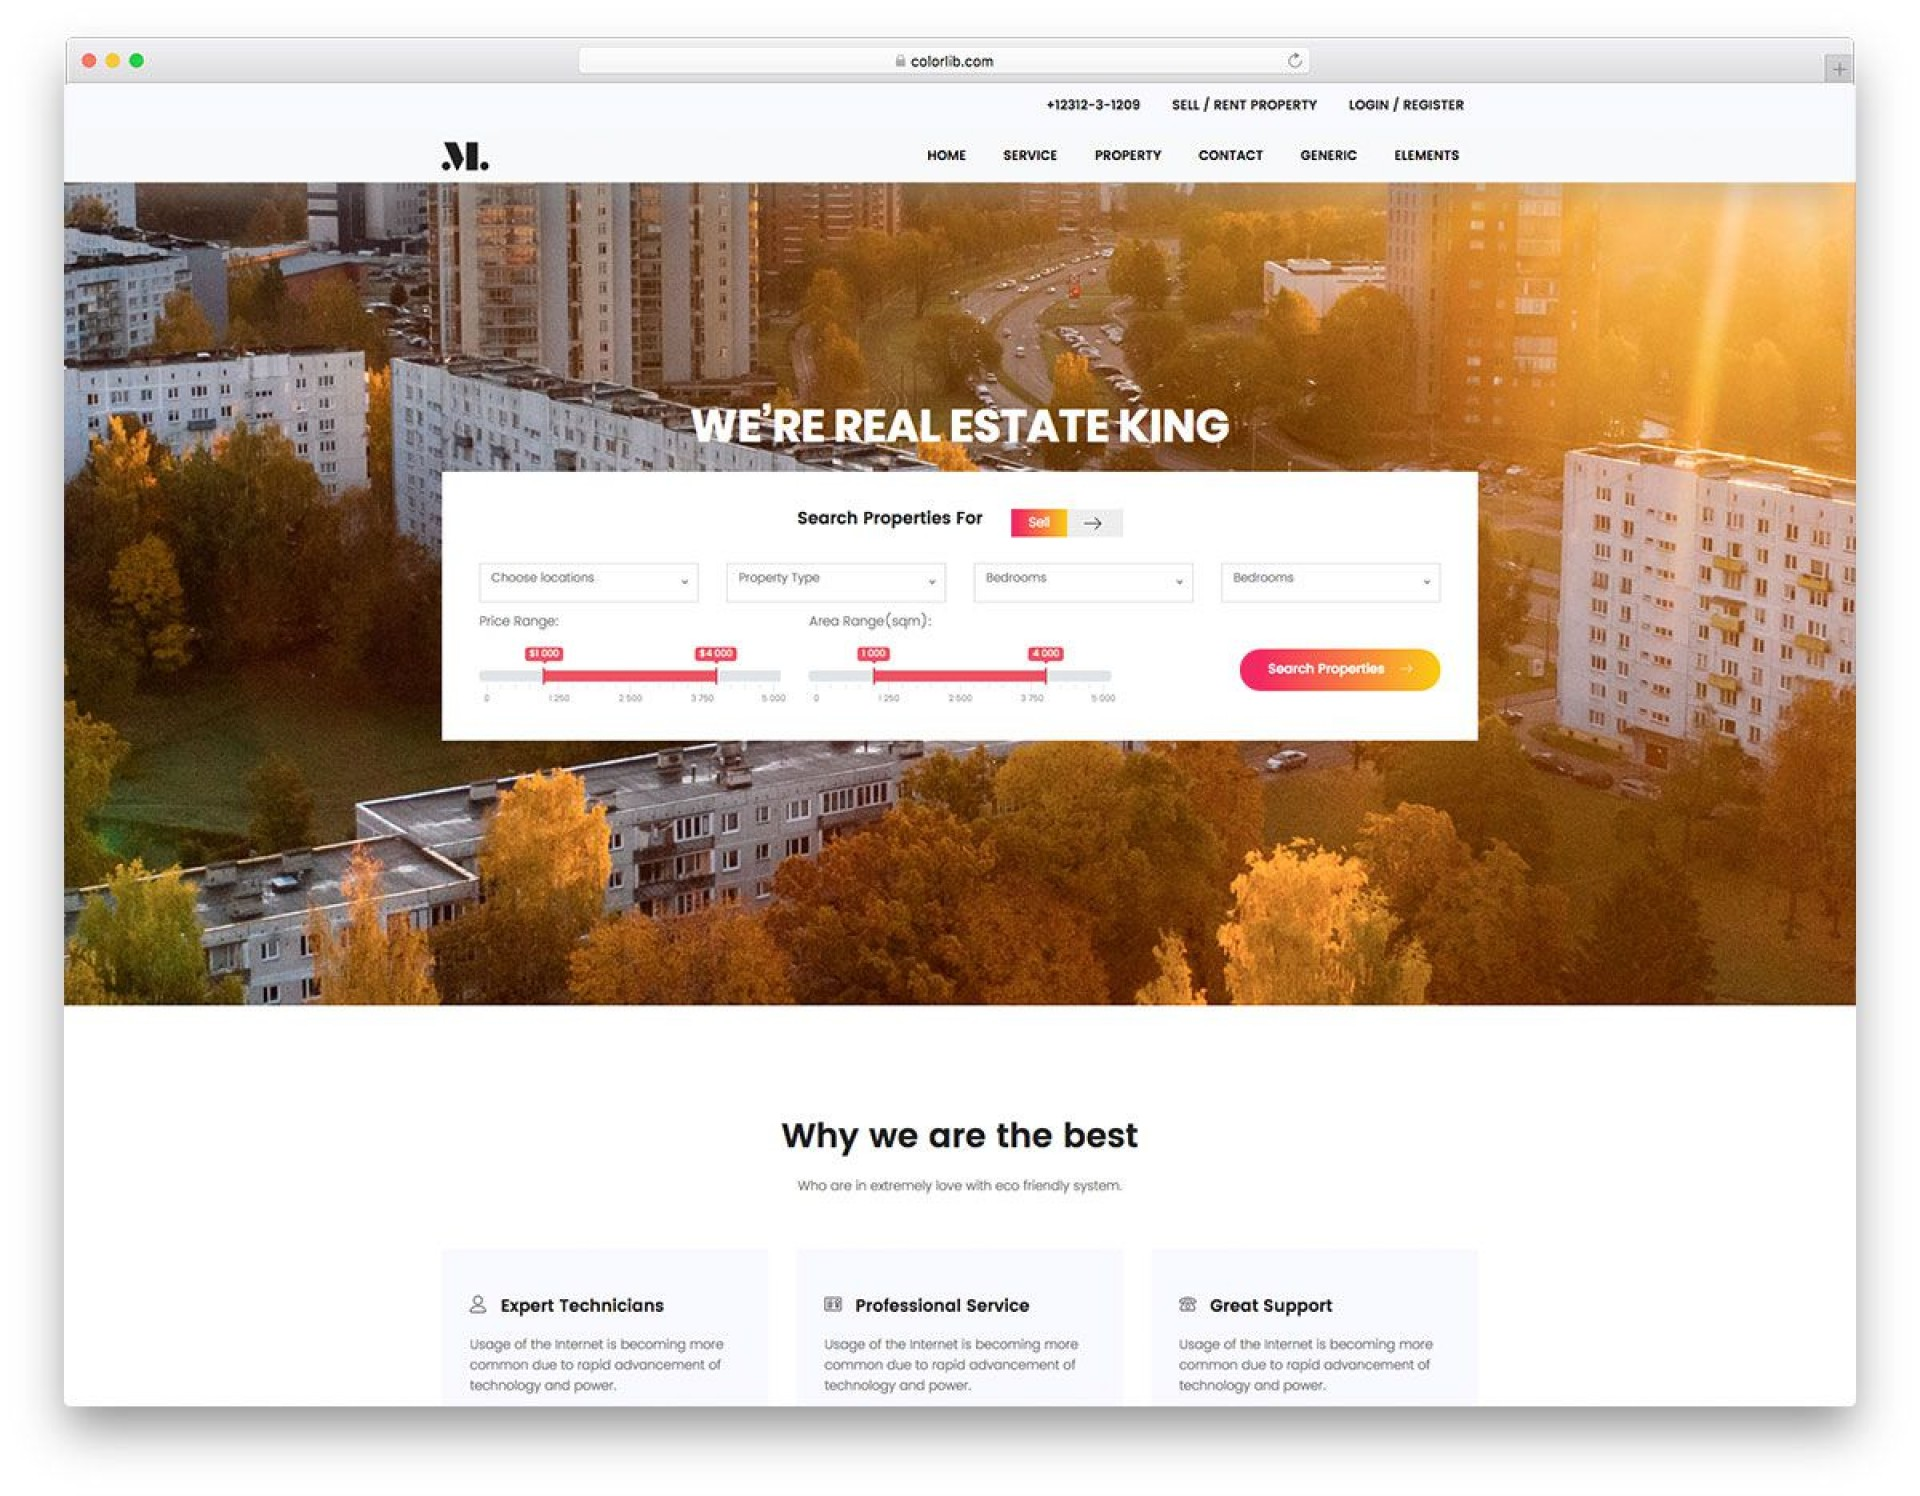 003 Marvelou Real Estate Agent Website Template High Resolution  Templates Agency Responsive Free Download Company Web1920